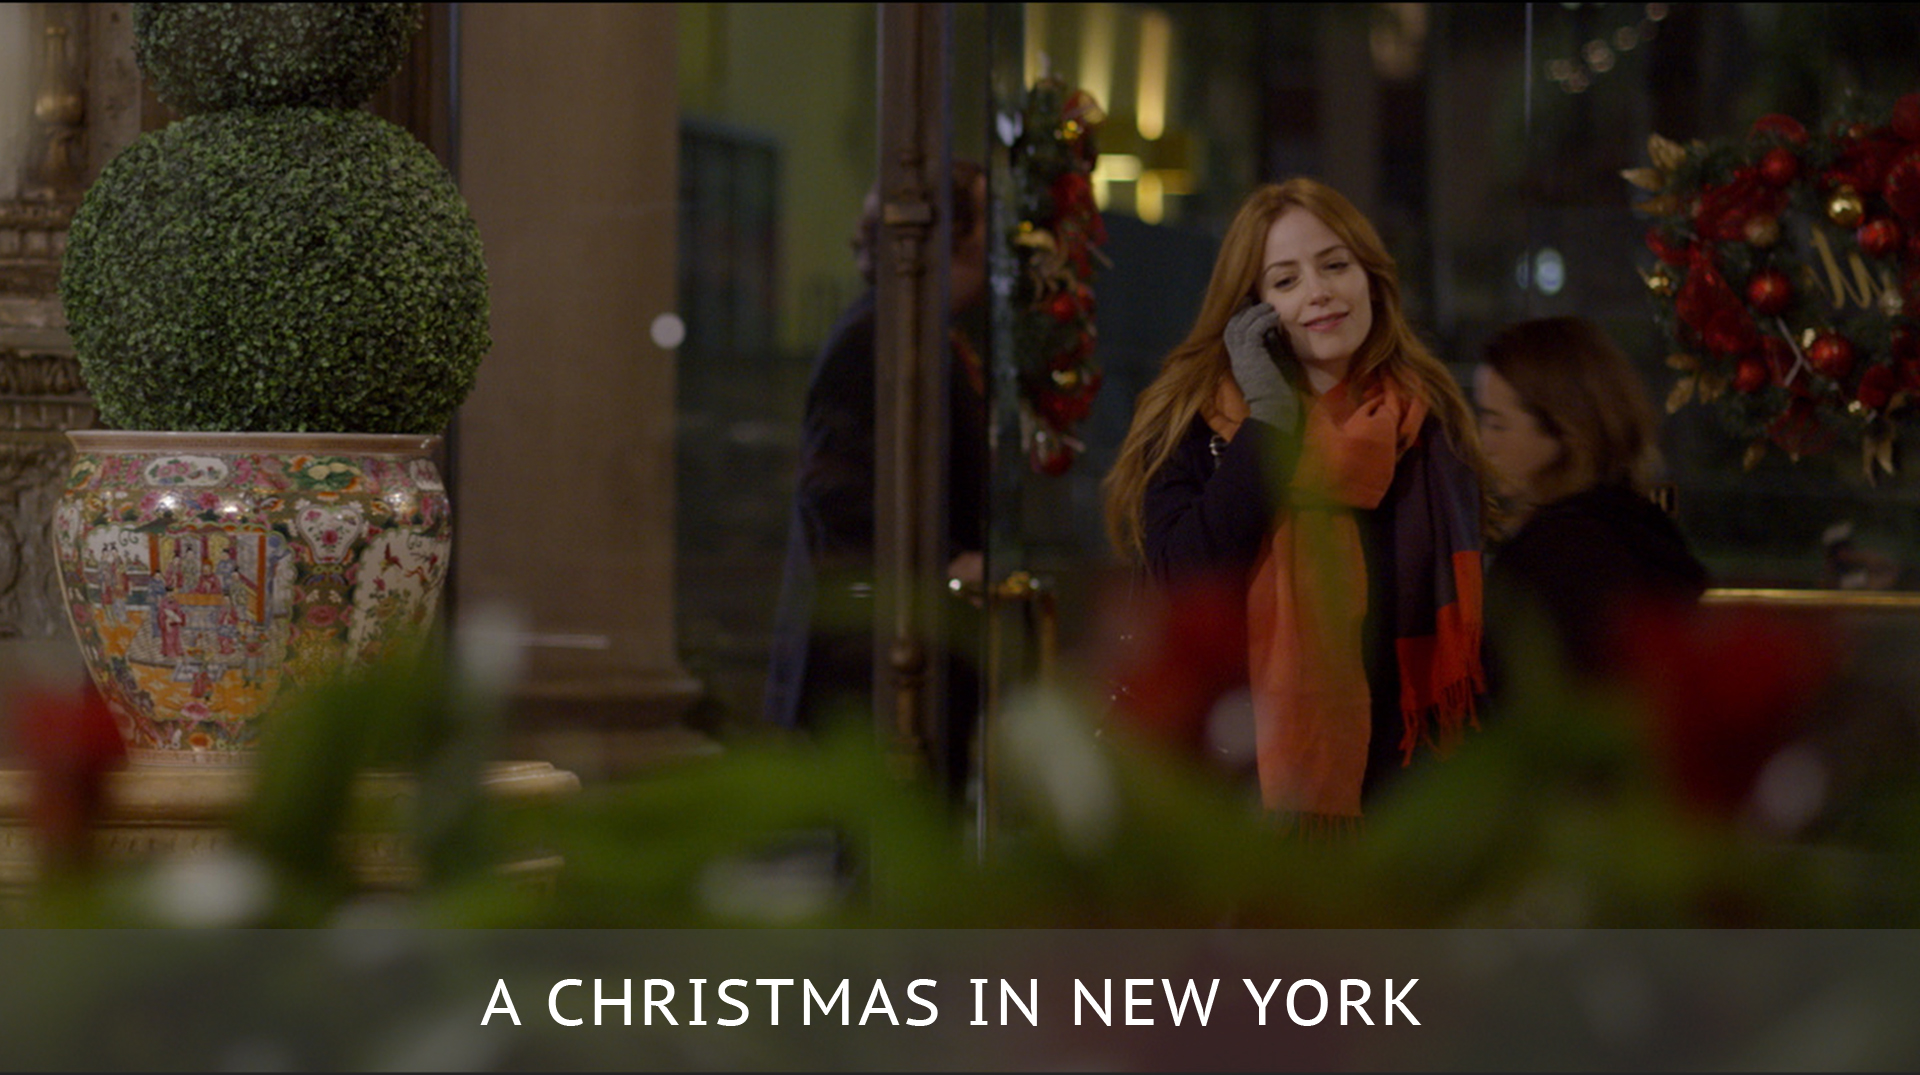 A Christmas in New York - Color Grading / Color Correction / Post Production